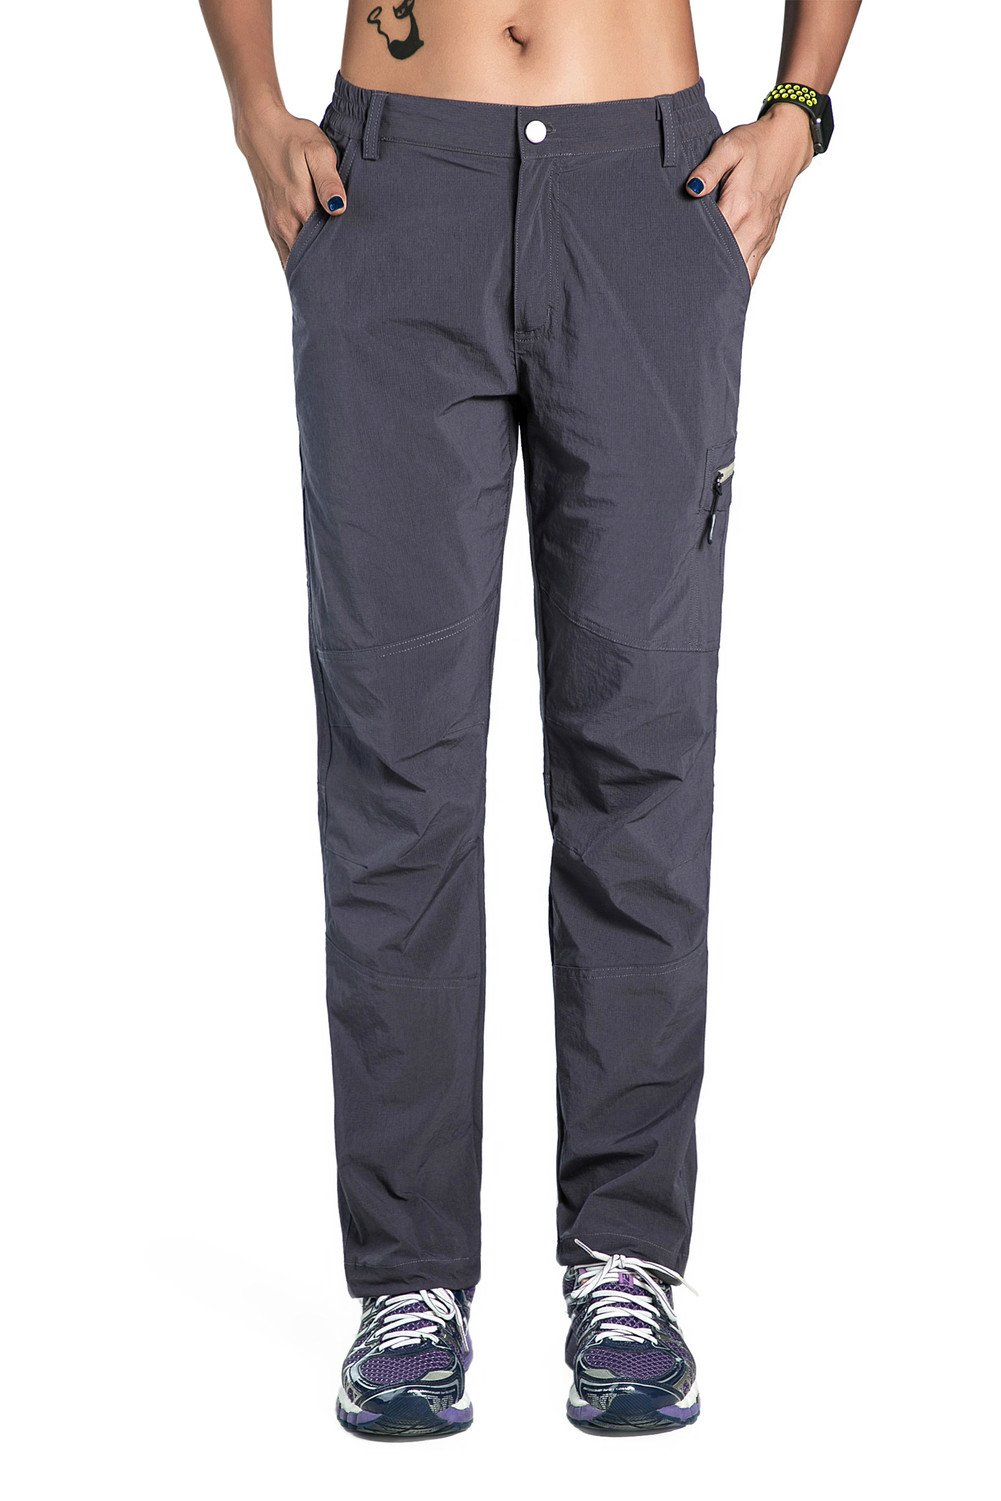 Unitop Women's Quick Dry Anytime Outdoor Hiking Pants Gray S 30'' Inseam